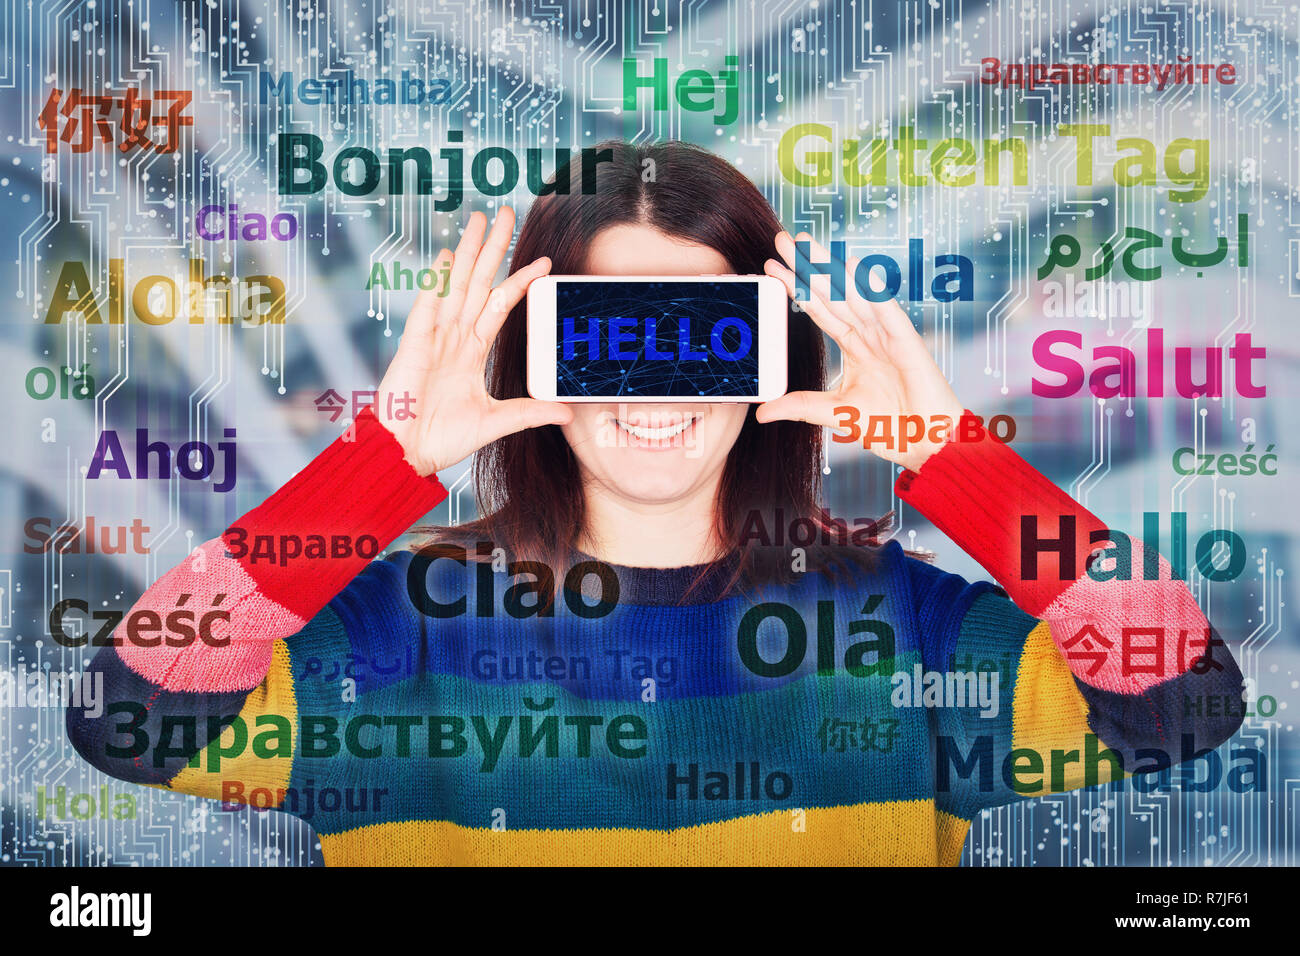 Happy young woman student holding smartphone close to eyes having fun learning and different languages. Speaking many languages easier using modern te - Stock Image